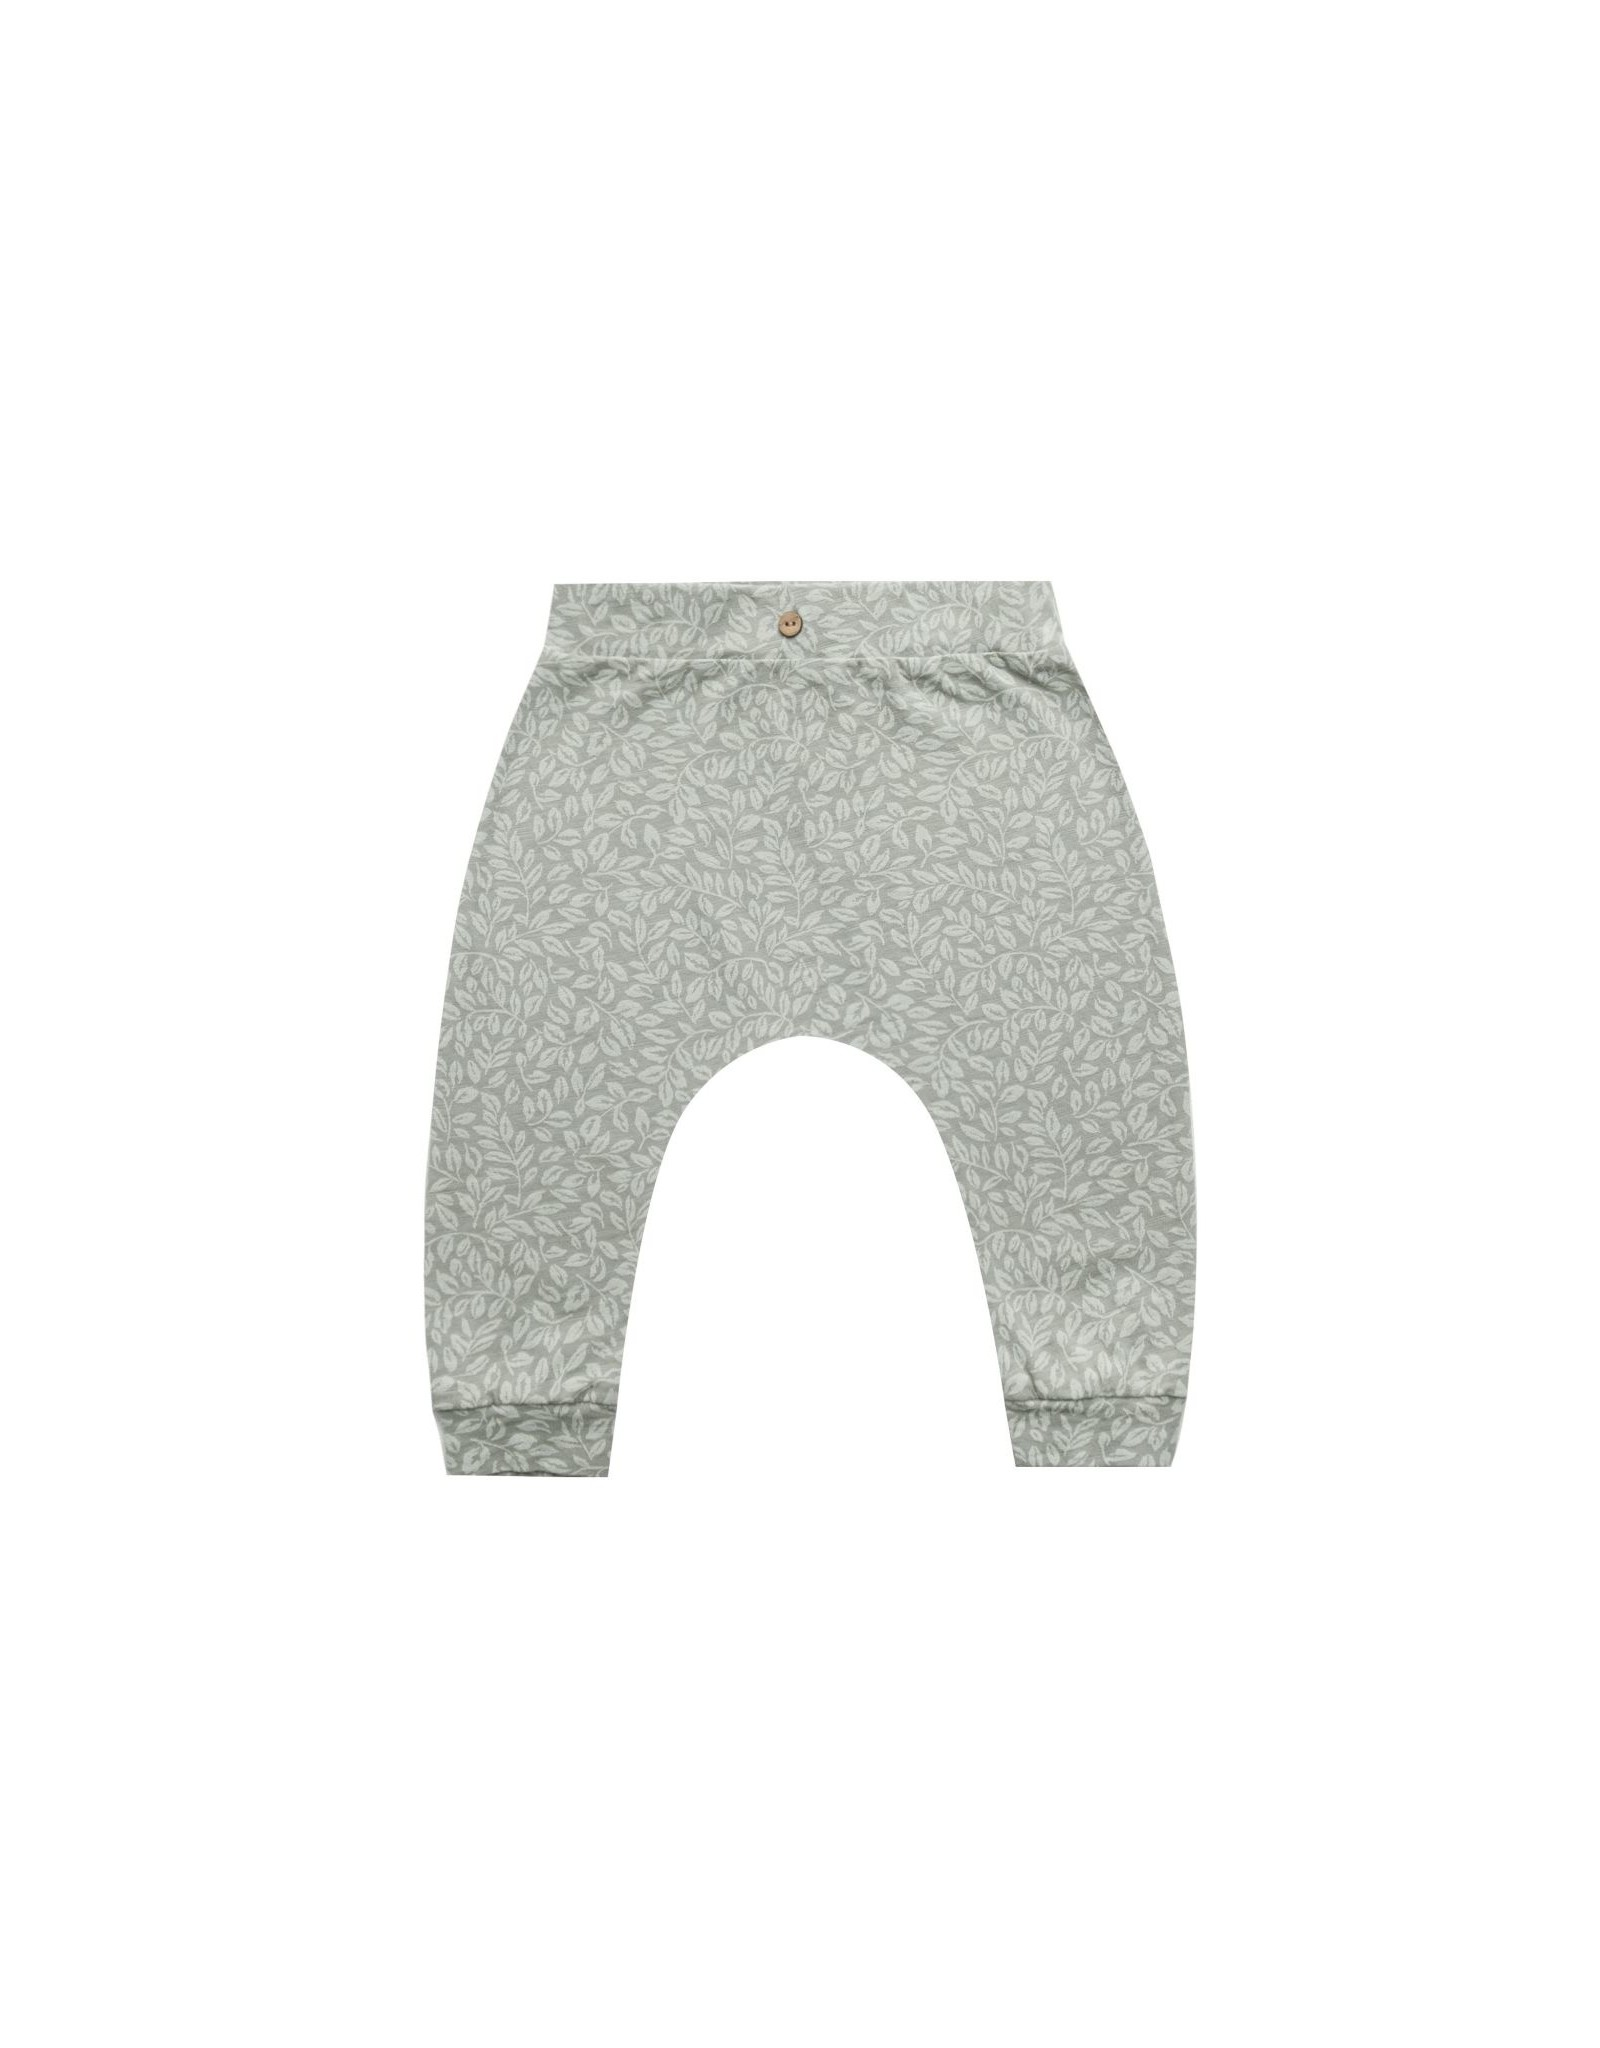 Rylee and Cru slouch pant- vines